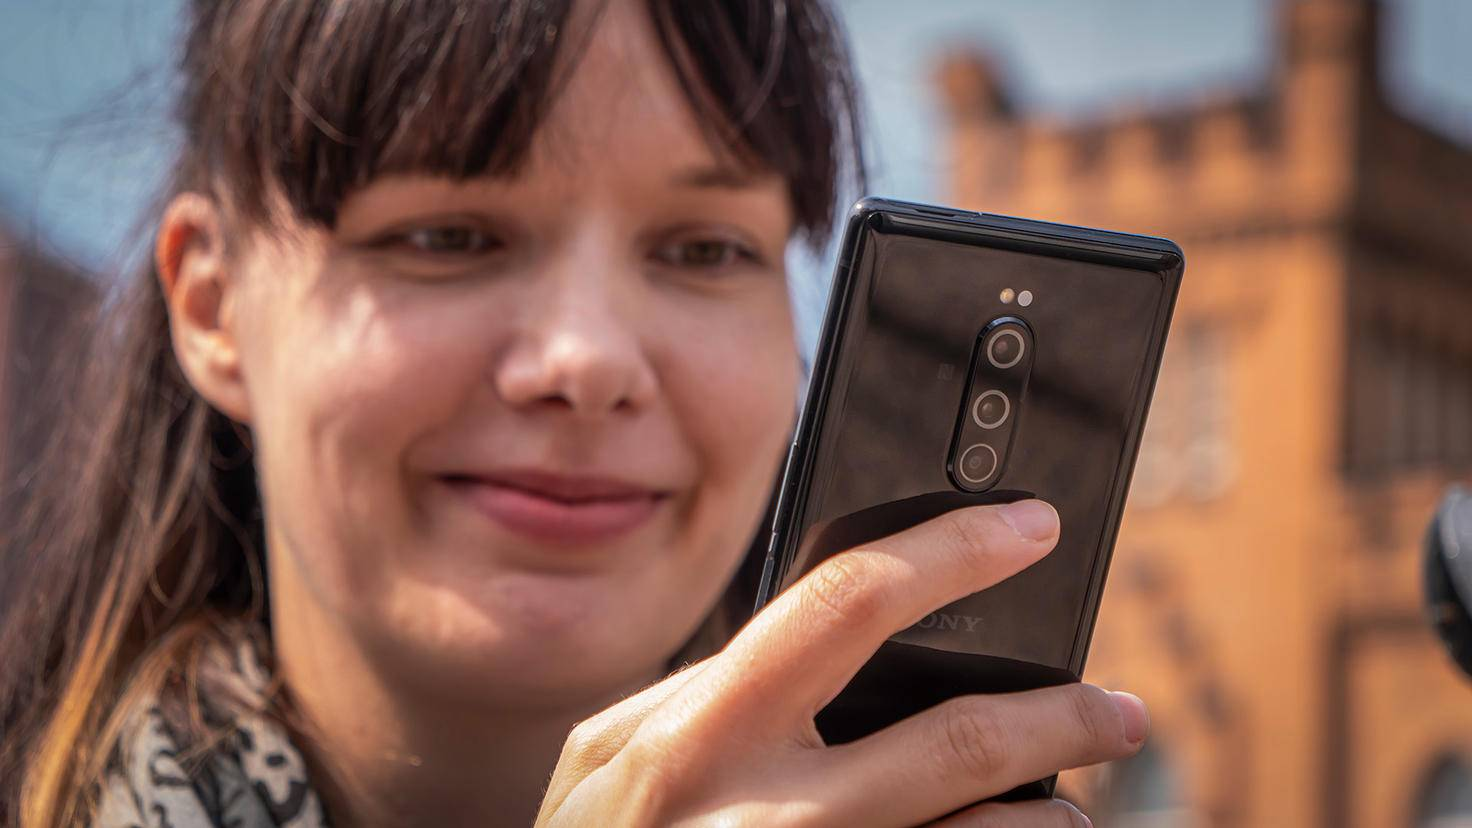 Sony Xperia 1 in der Hand